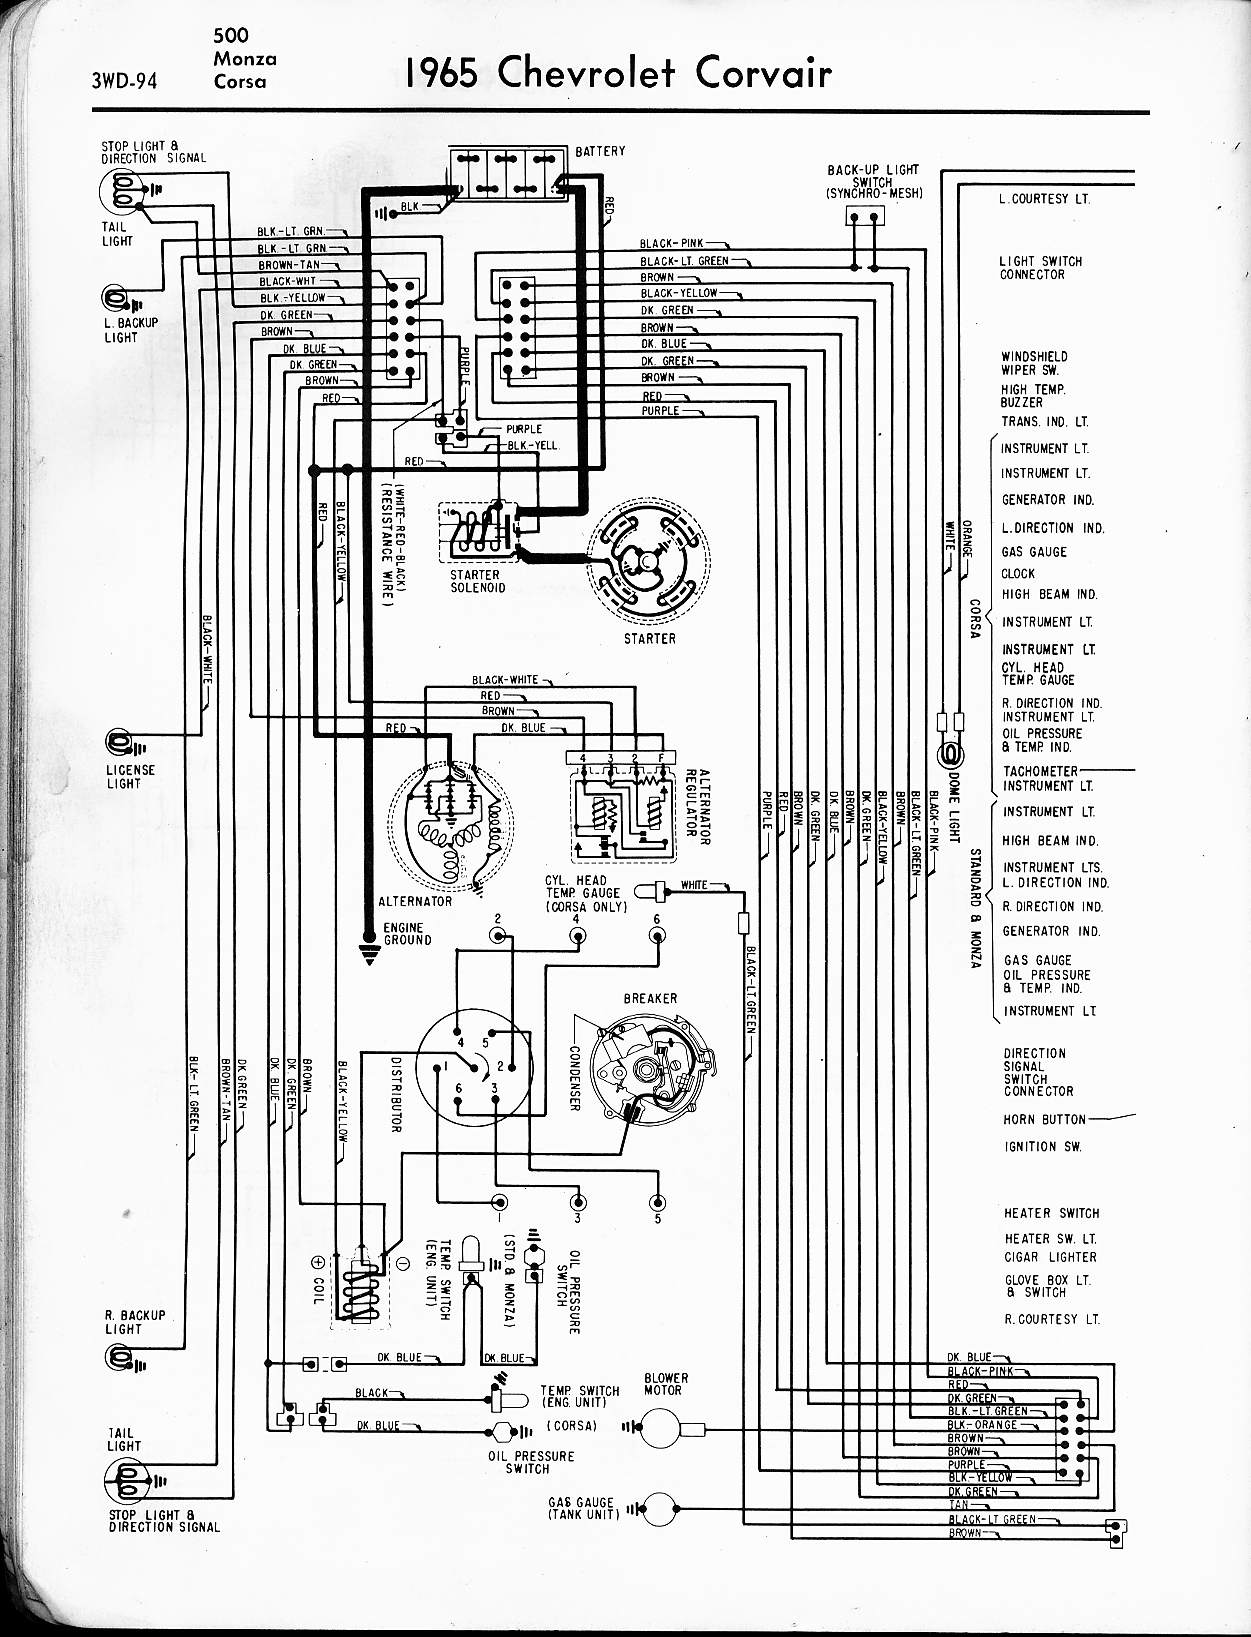 Chevy Starter Wiring 1964 Archive Of Automotive Diagram Coil Ignition 65 Chevelle Opinions About Rh Voterid Co